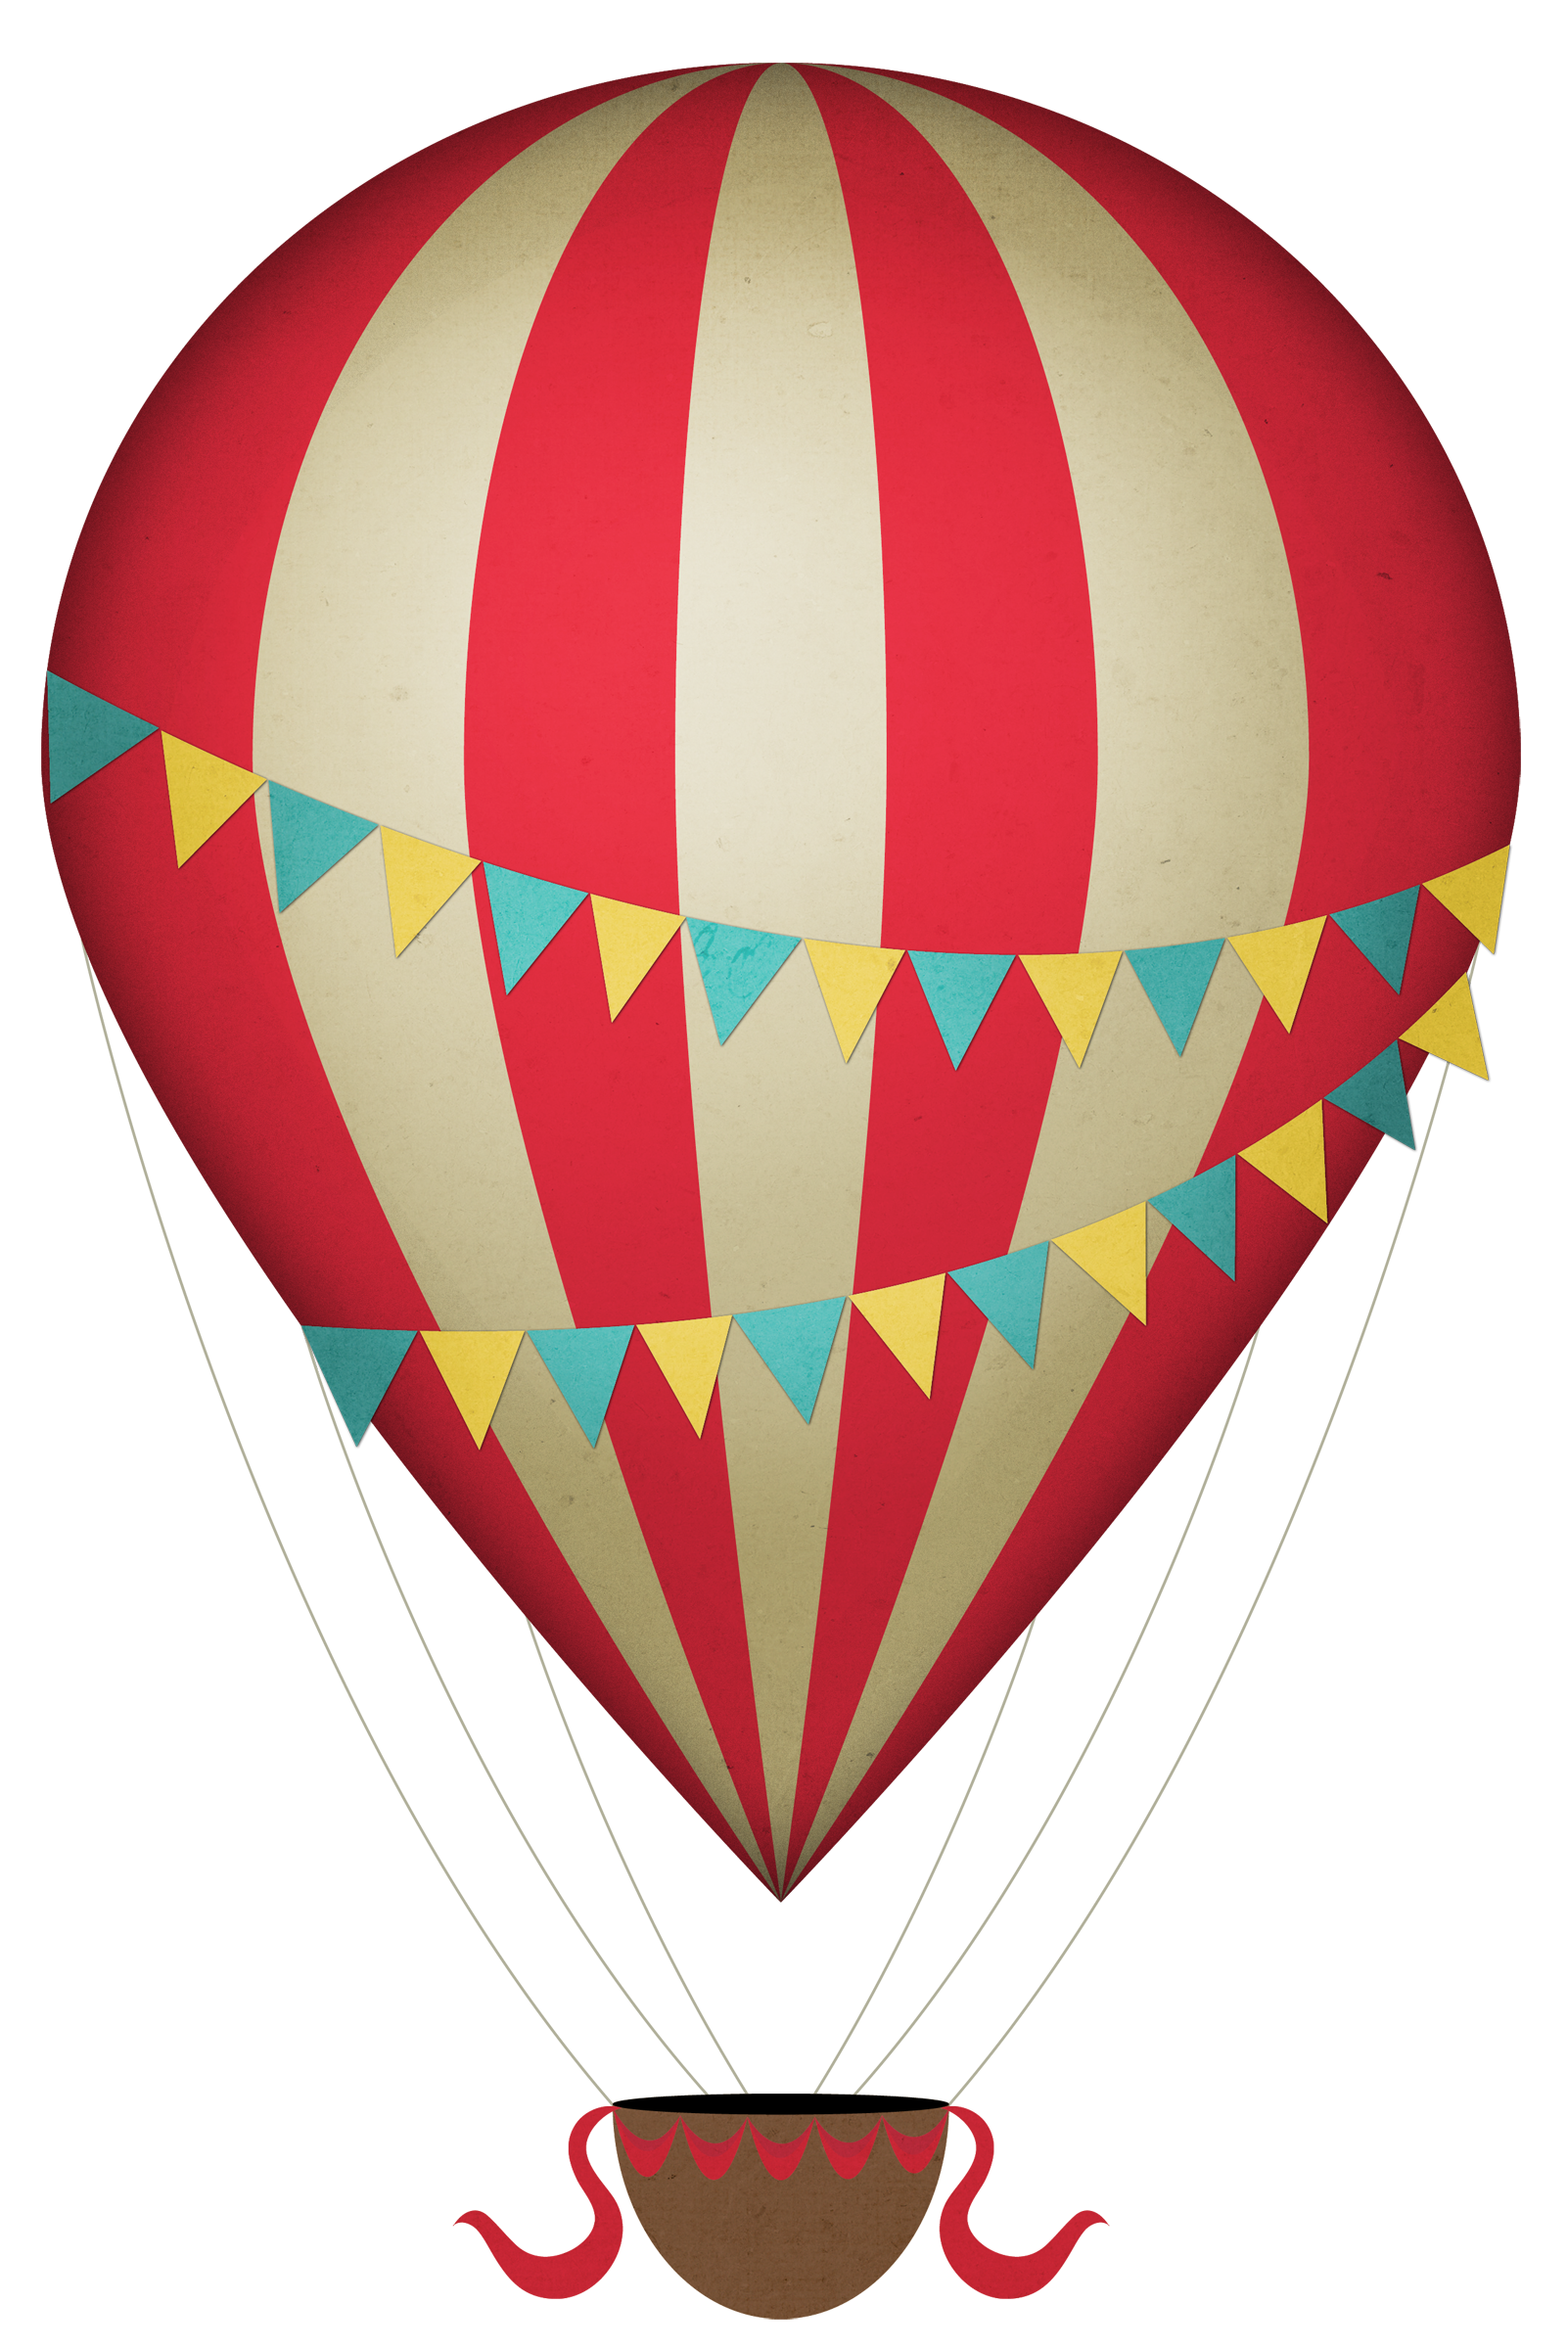 Hot air balloon clipart png. Vintage up inspiration vintagehotairballoonclipart